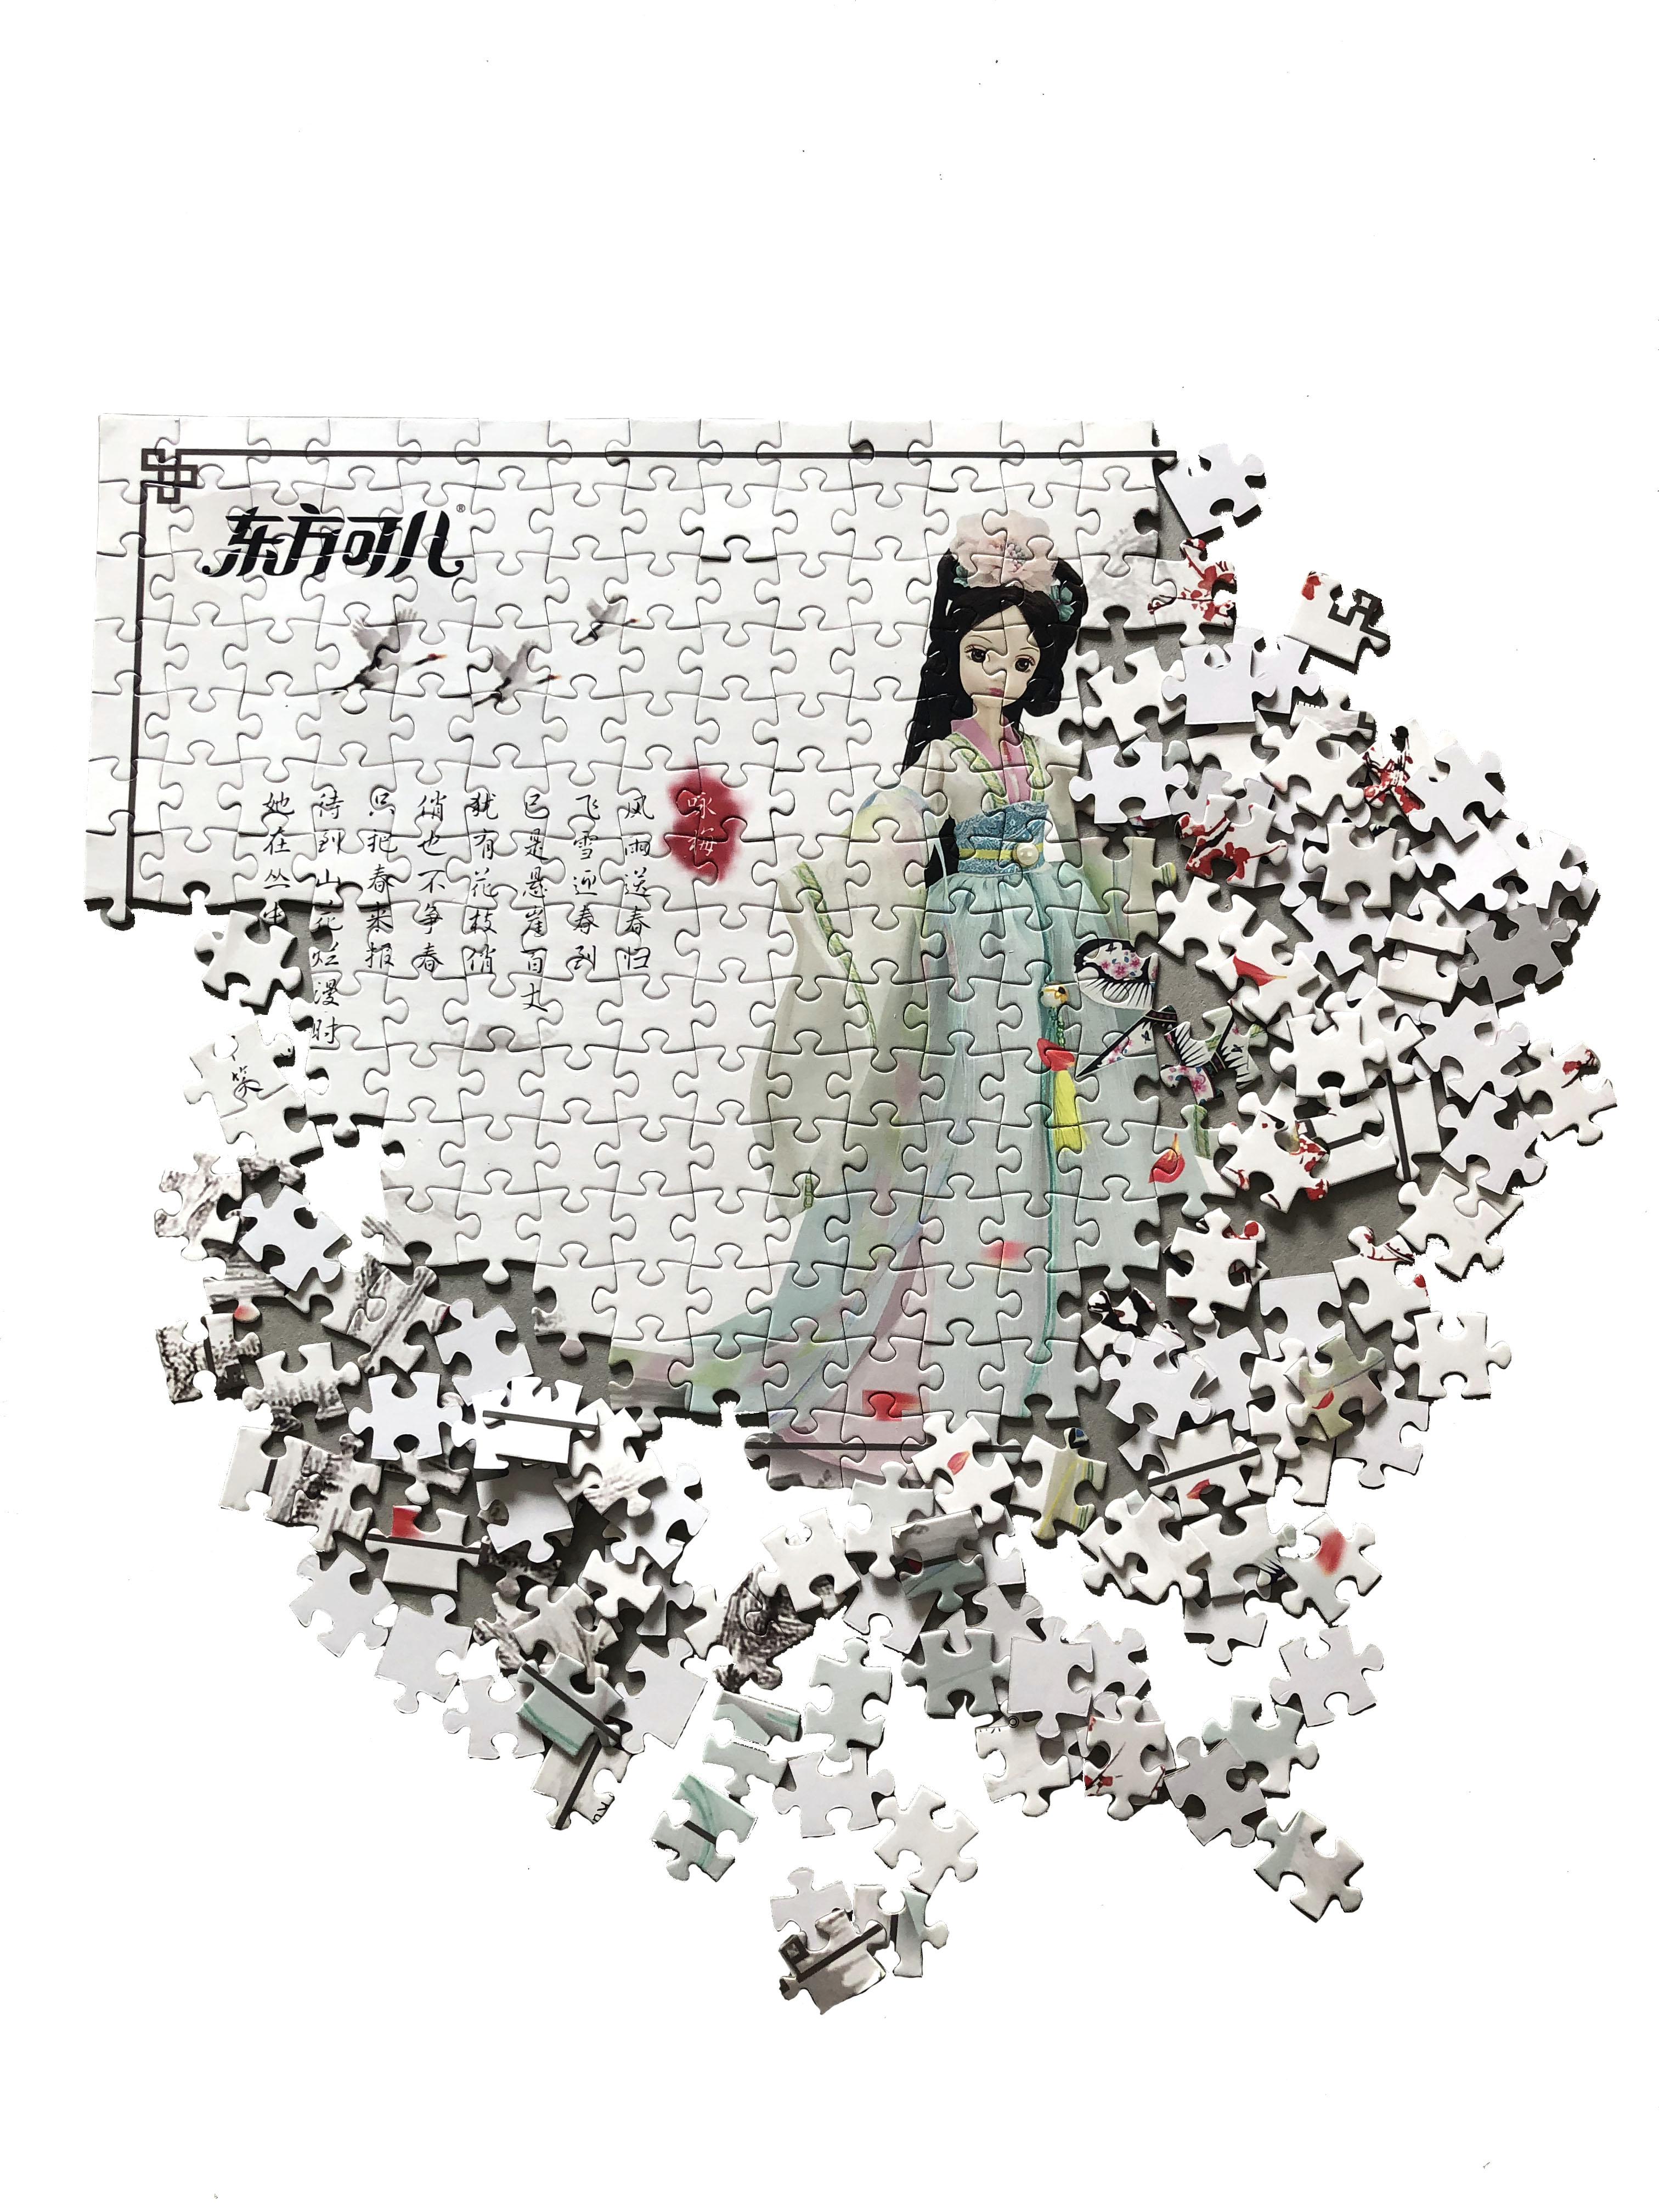 300 piece high quality cardboard jigsaw puzzle with small order available